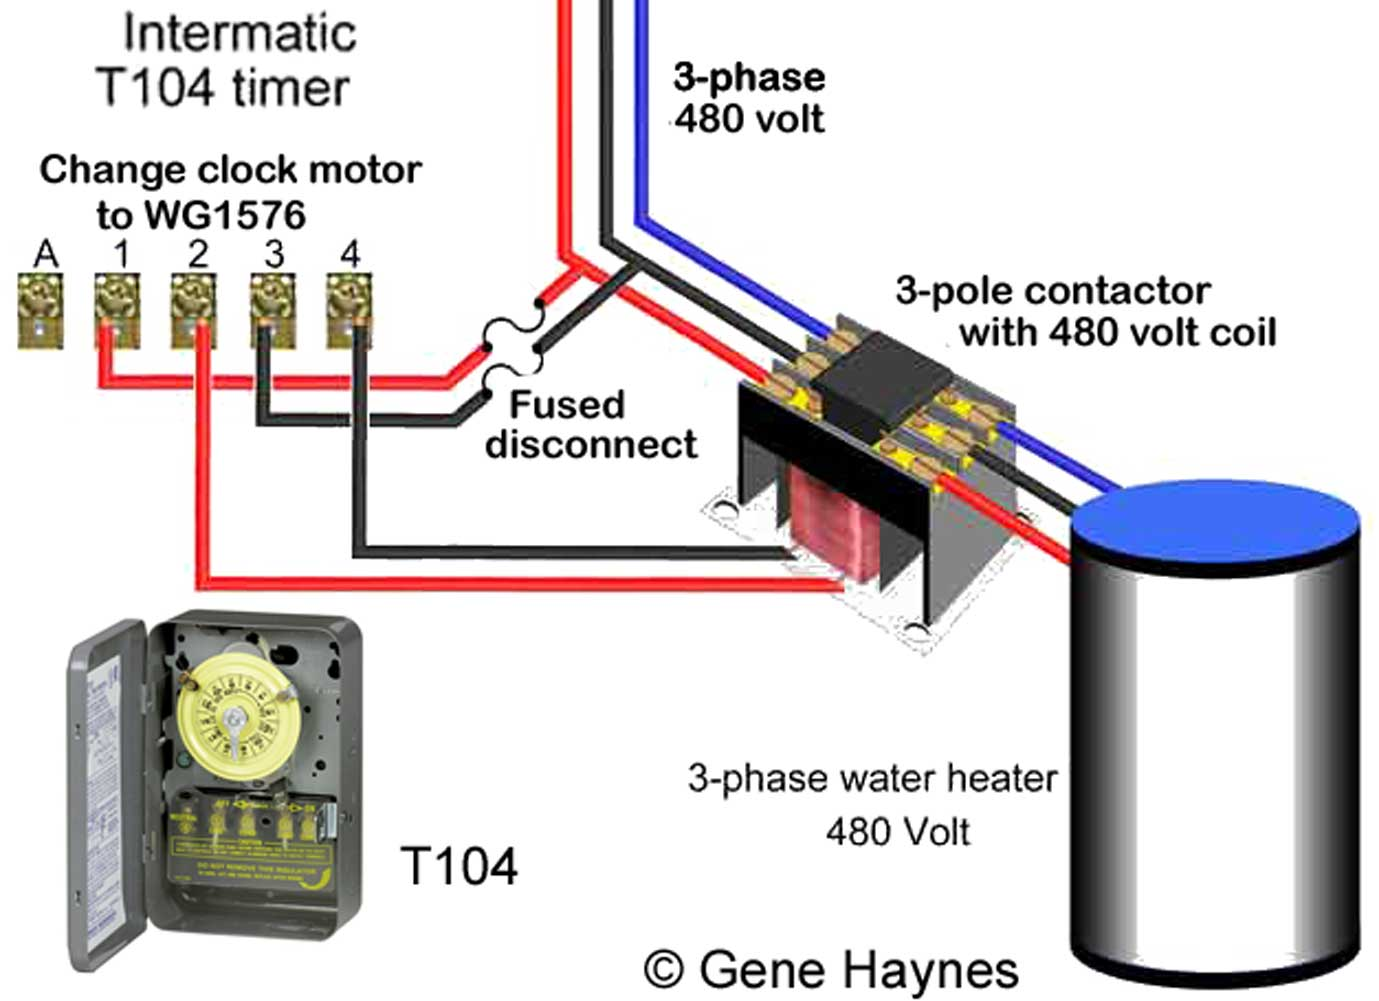 hight resolution of control 480 v 3 phase using t104 timer change 240v wg1573 clock motor to wg1576 clock motor